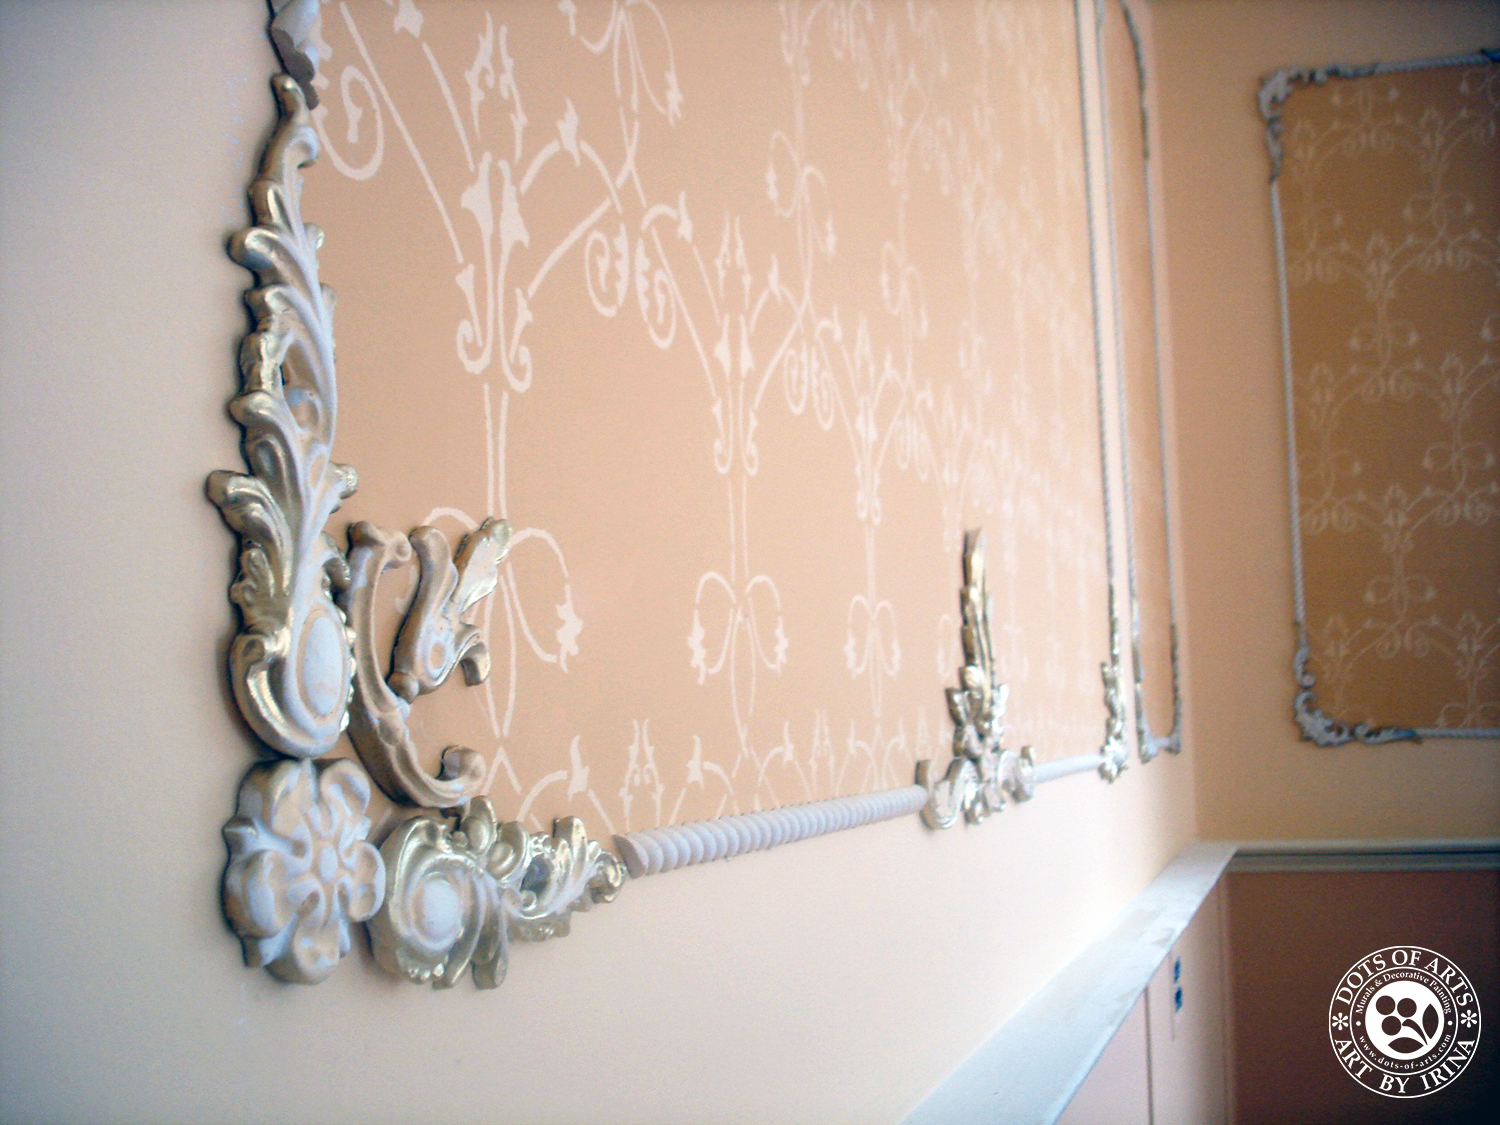 wall-decorative-painting-stenceling-custom-millwork-crown-moulding-dots-of-arts.jpg